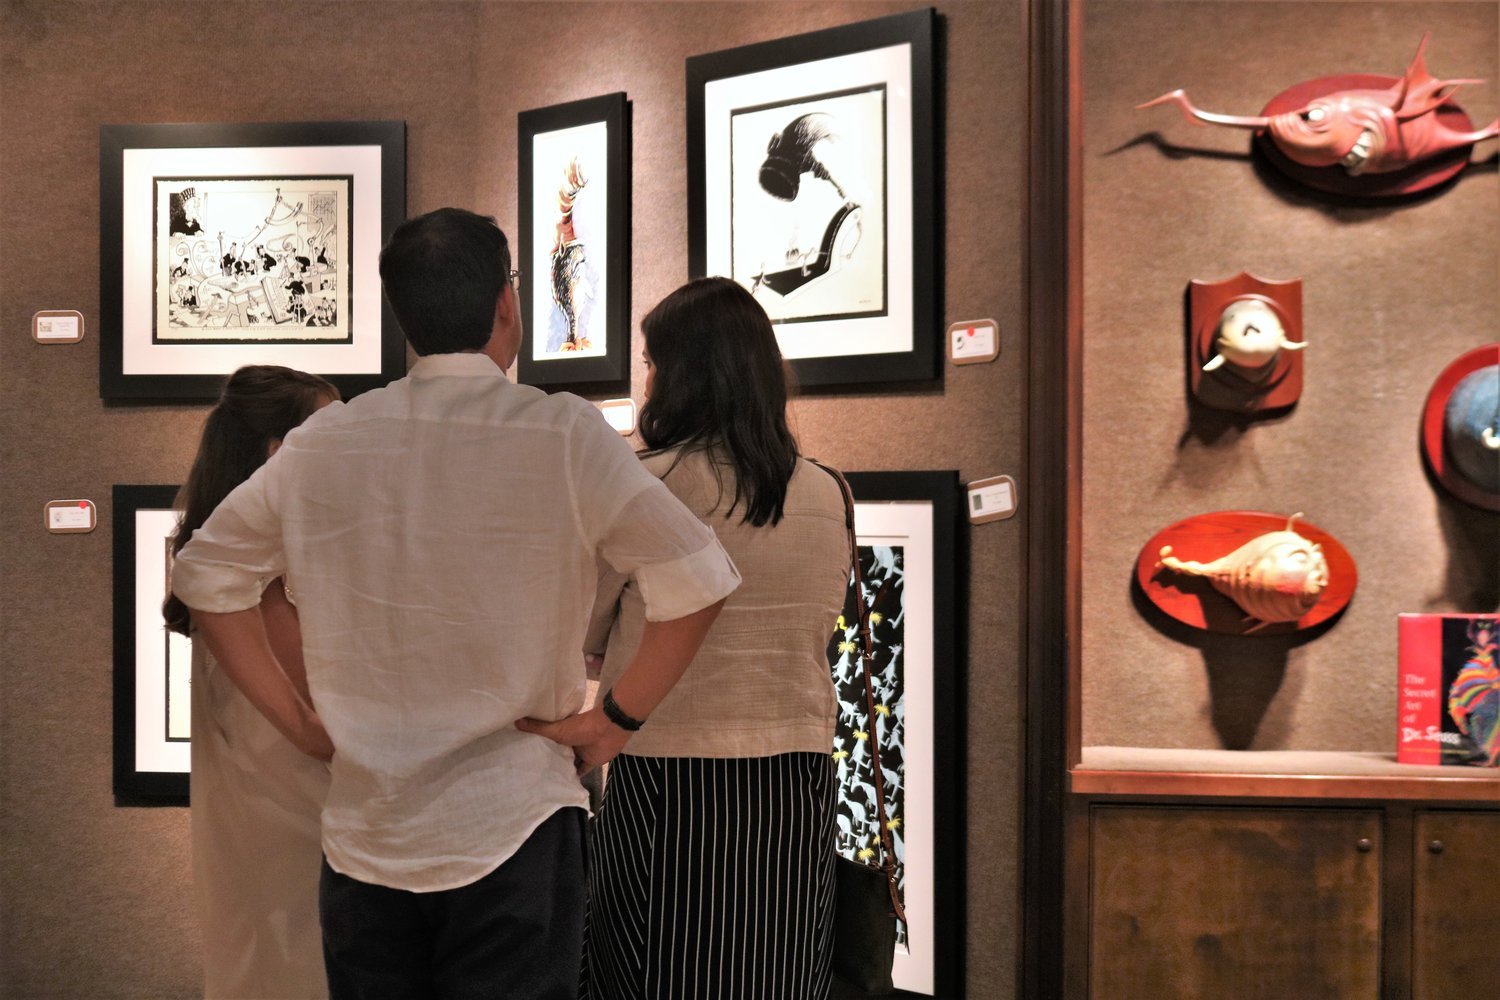 Exhibit opening attendees examine some of Dr. Seuss's political cartoons.